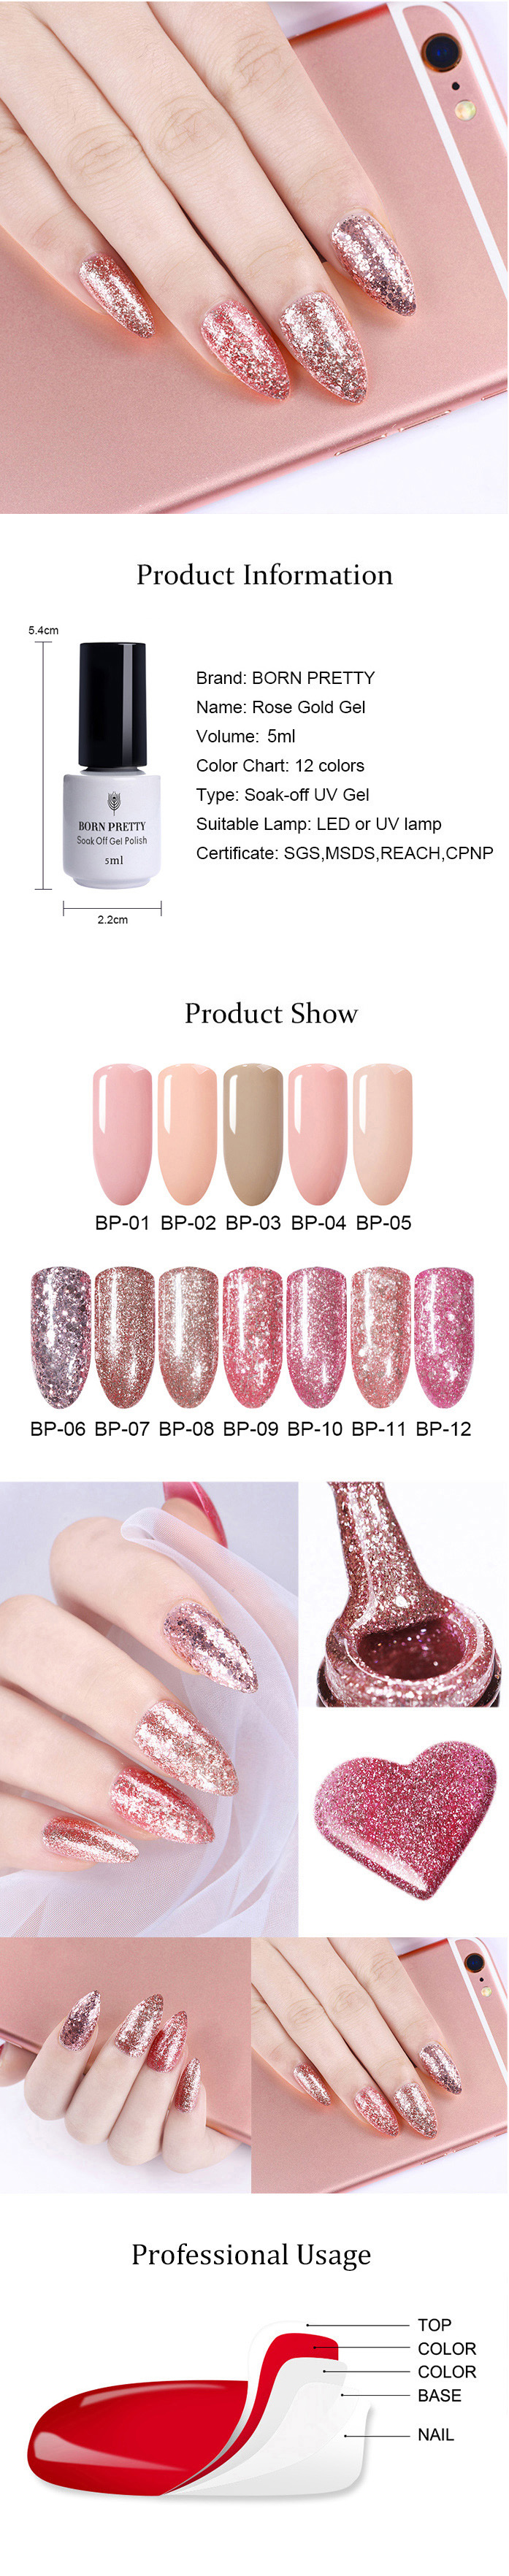 ⑤BORN PRETTY 5ml Nail UV Gel Rose Gold Nude Pink Shinning